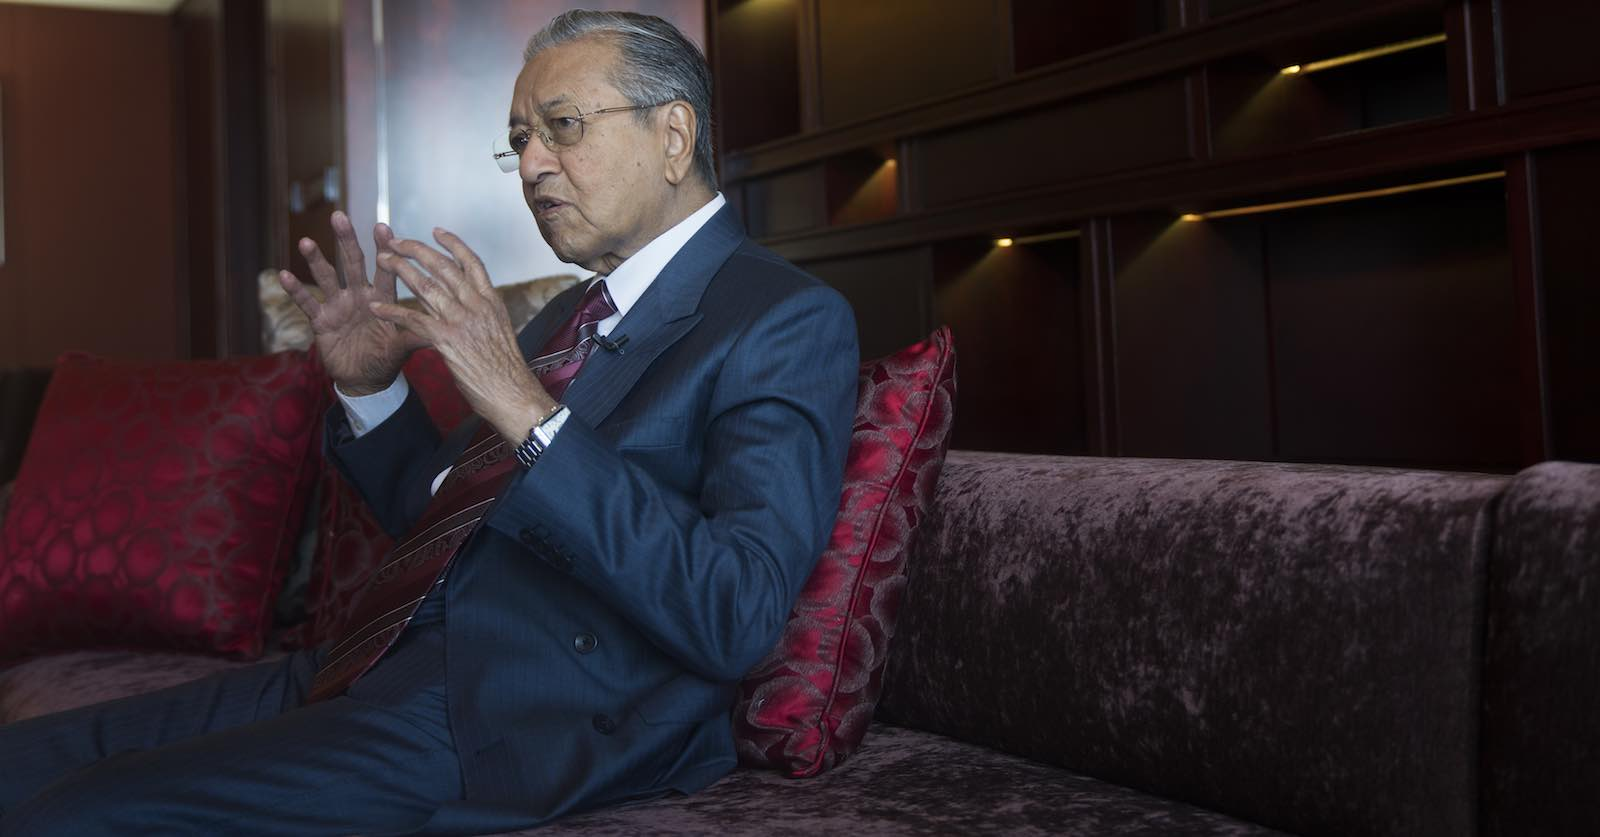 Malaysian Prime Minister Mahathir Mohamad during a visit last month to Beijing, China (VCG via Getty Images)